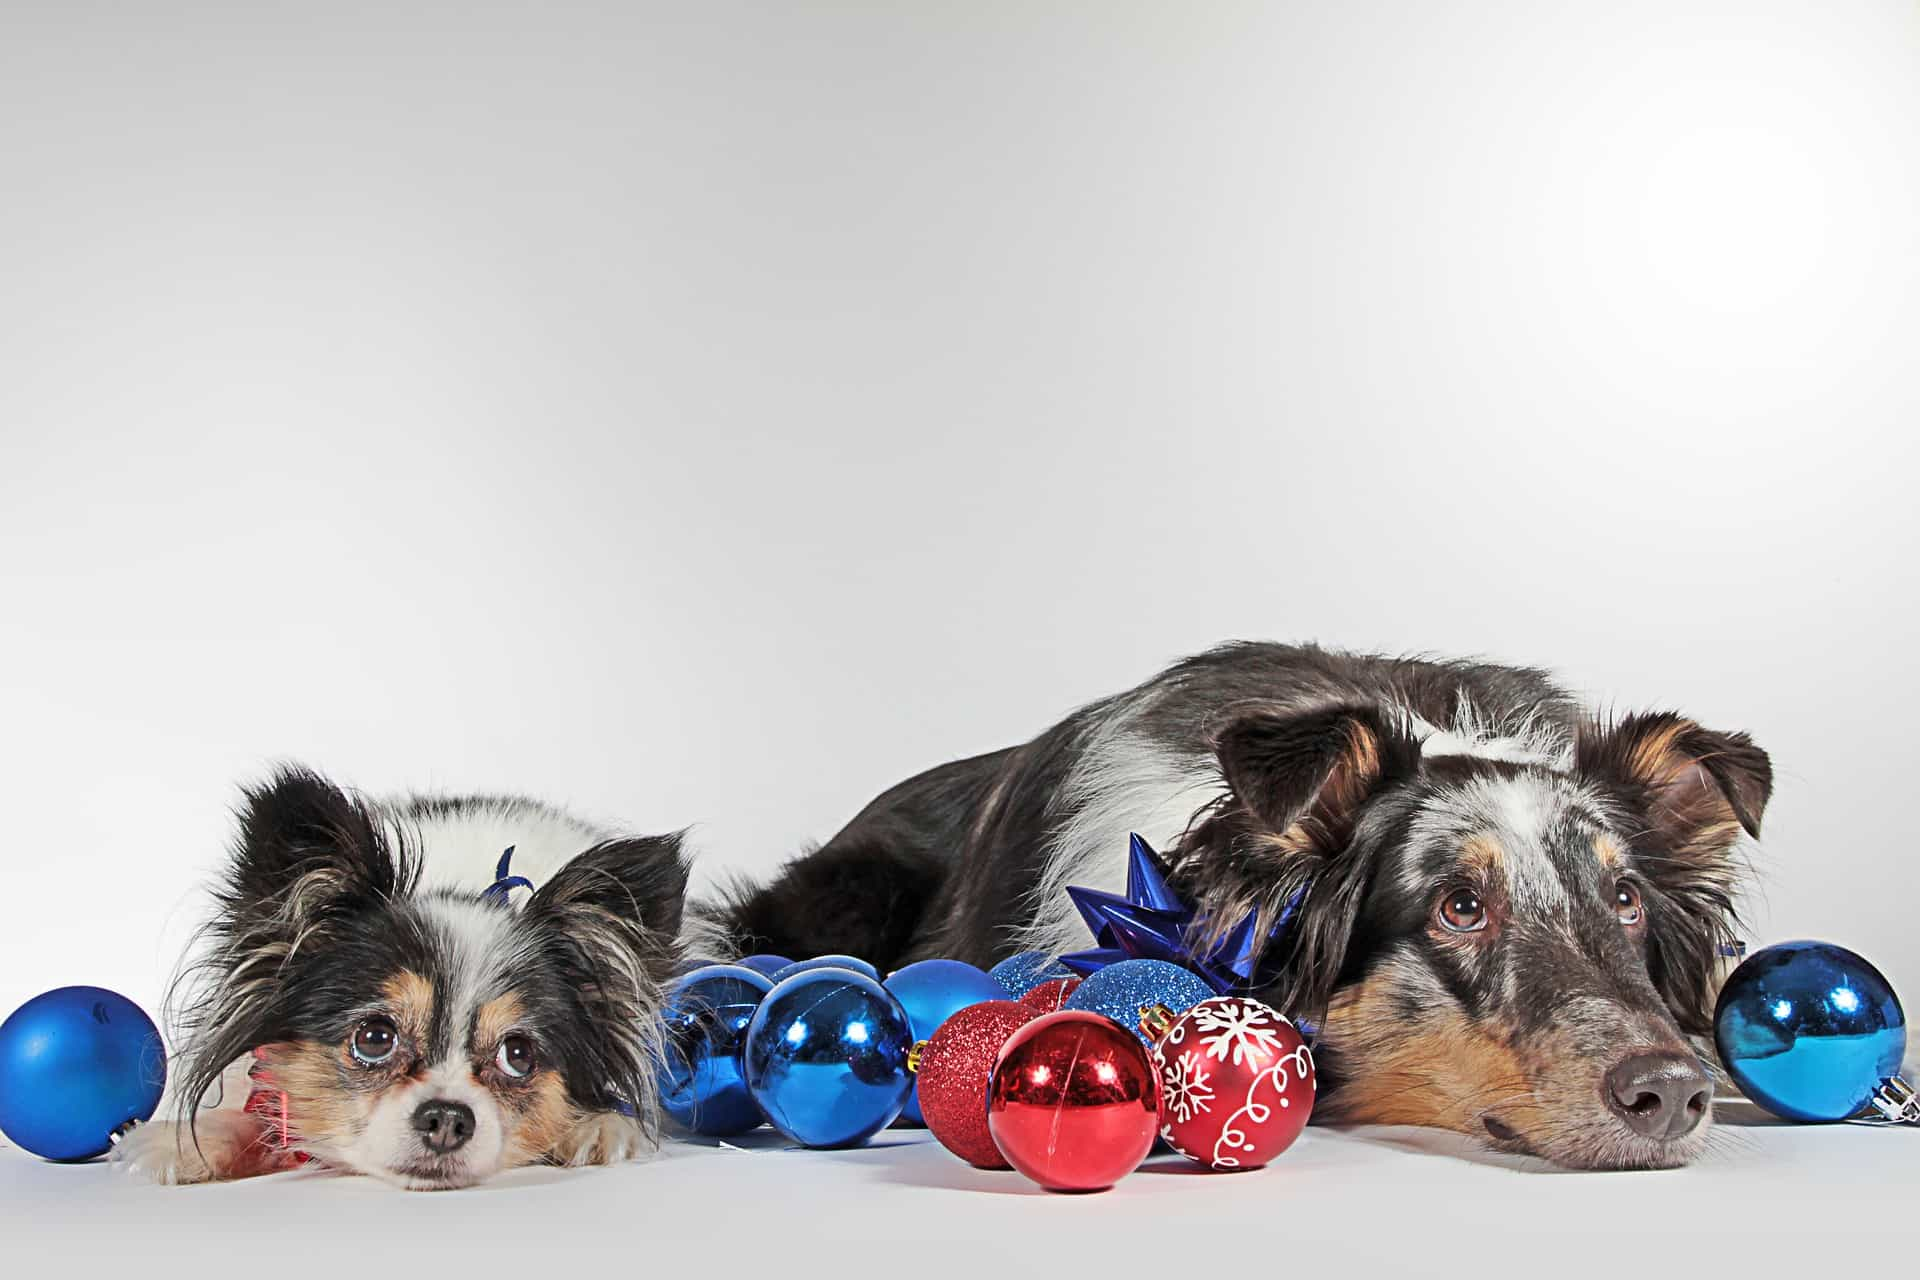 Two dogs lying down surrounded by baubles